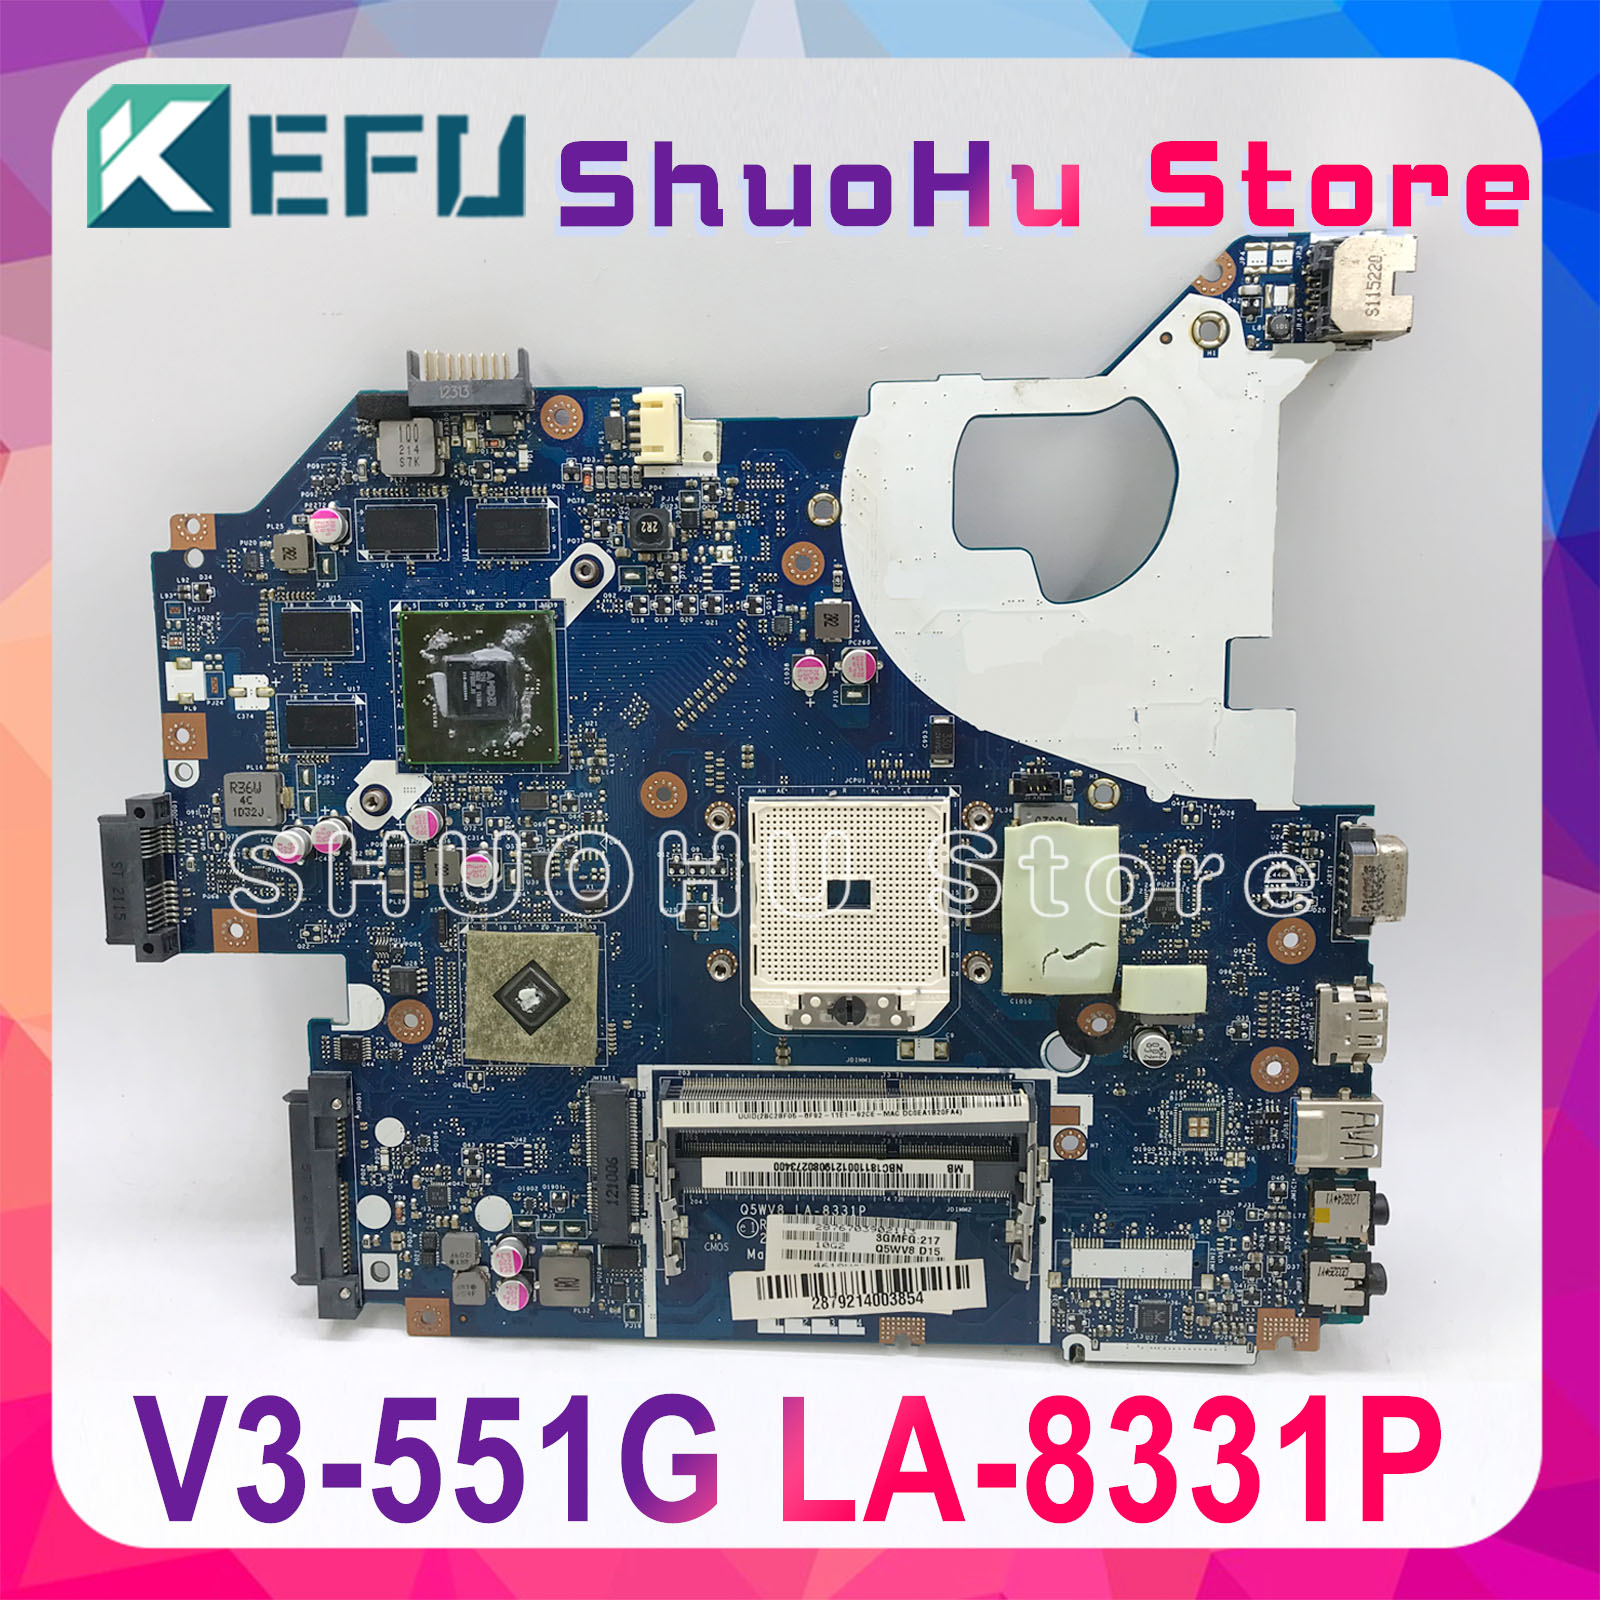 KEFU NBC1811001 Q5WV8 LA-8331P motherboard For acer aspire V3-551G V3-551 laptop motherboard DDR3 Radeon <font><b>HD</b></font> <font><b>7670M</b></font> original test image